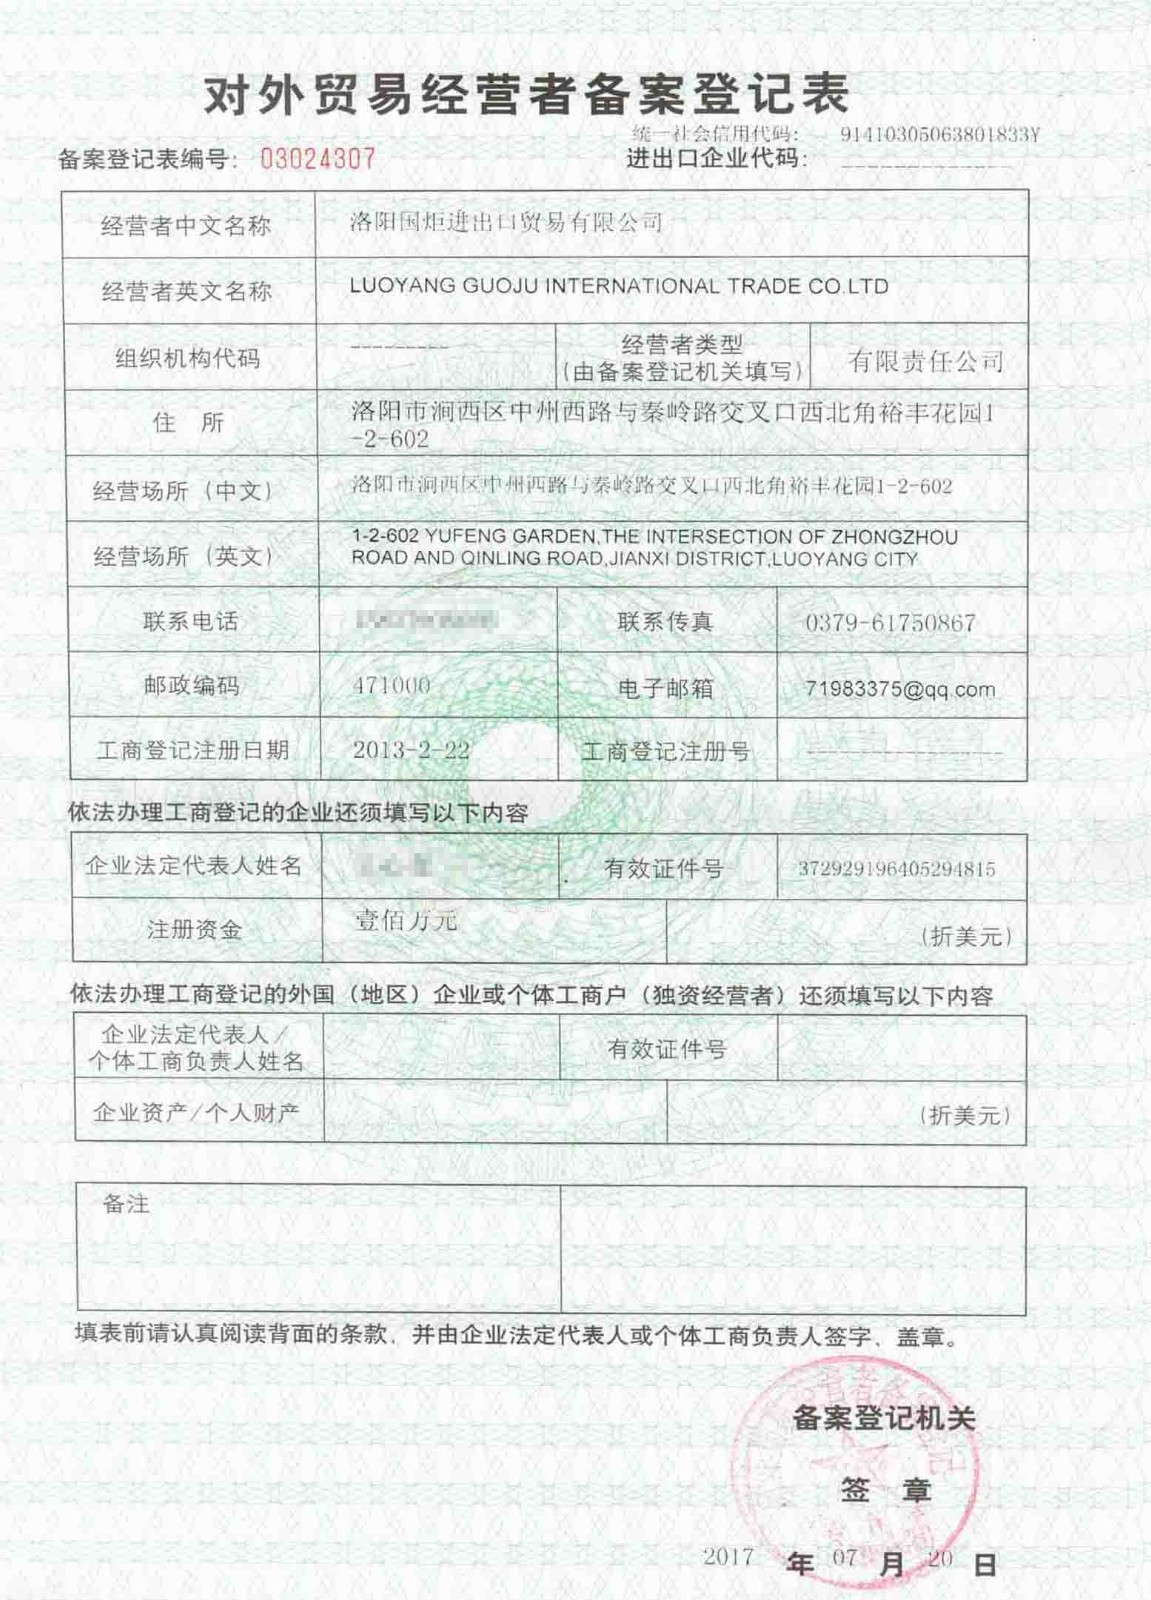 Foreign Trade Operators Registration Record Form